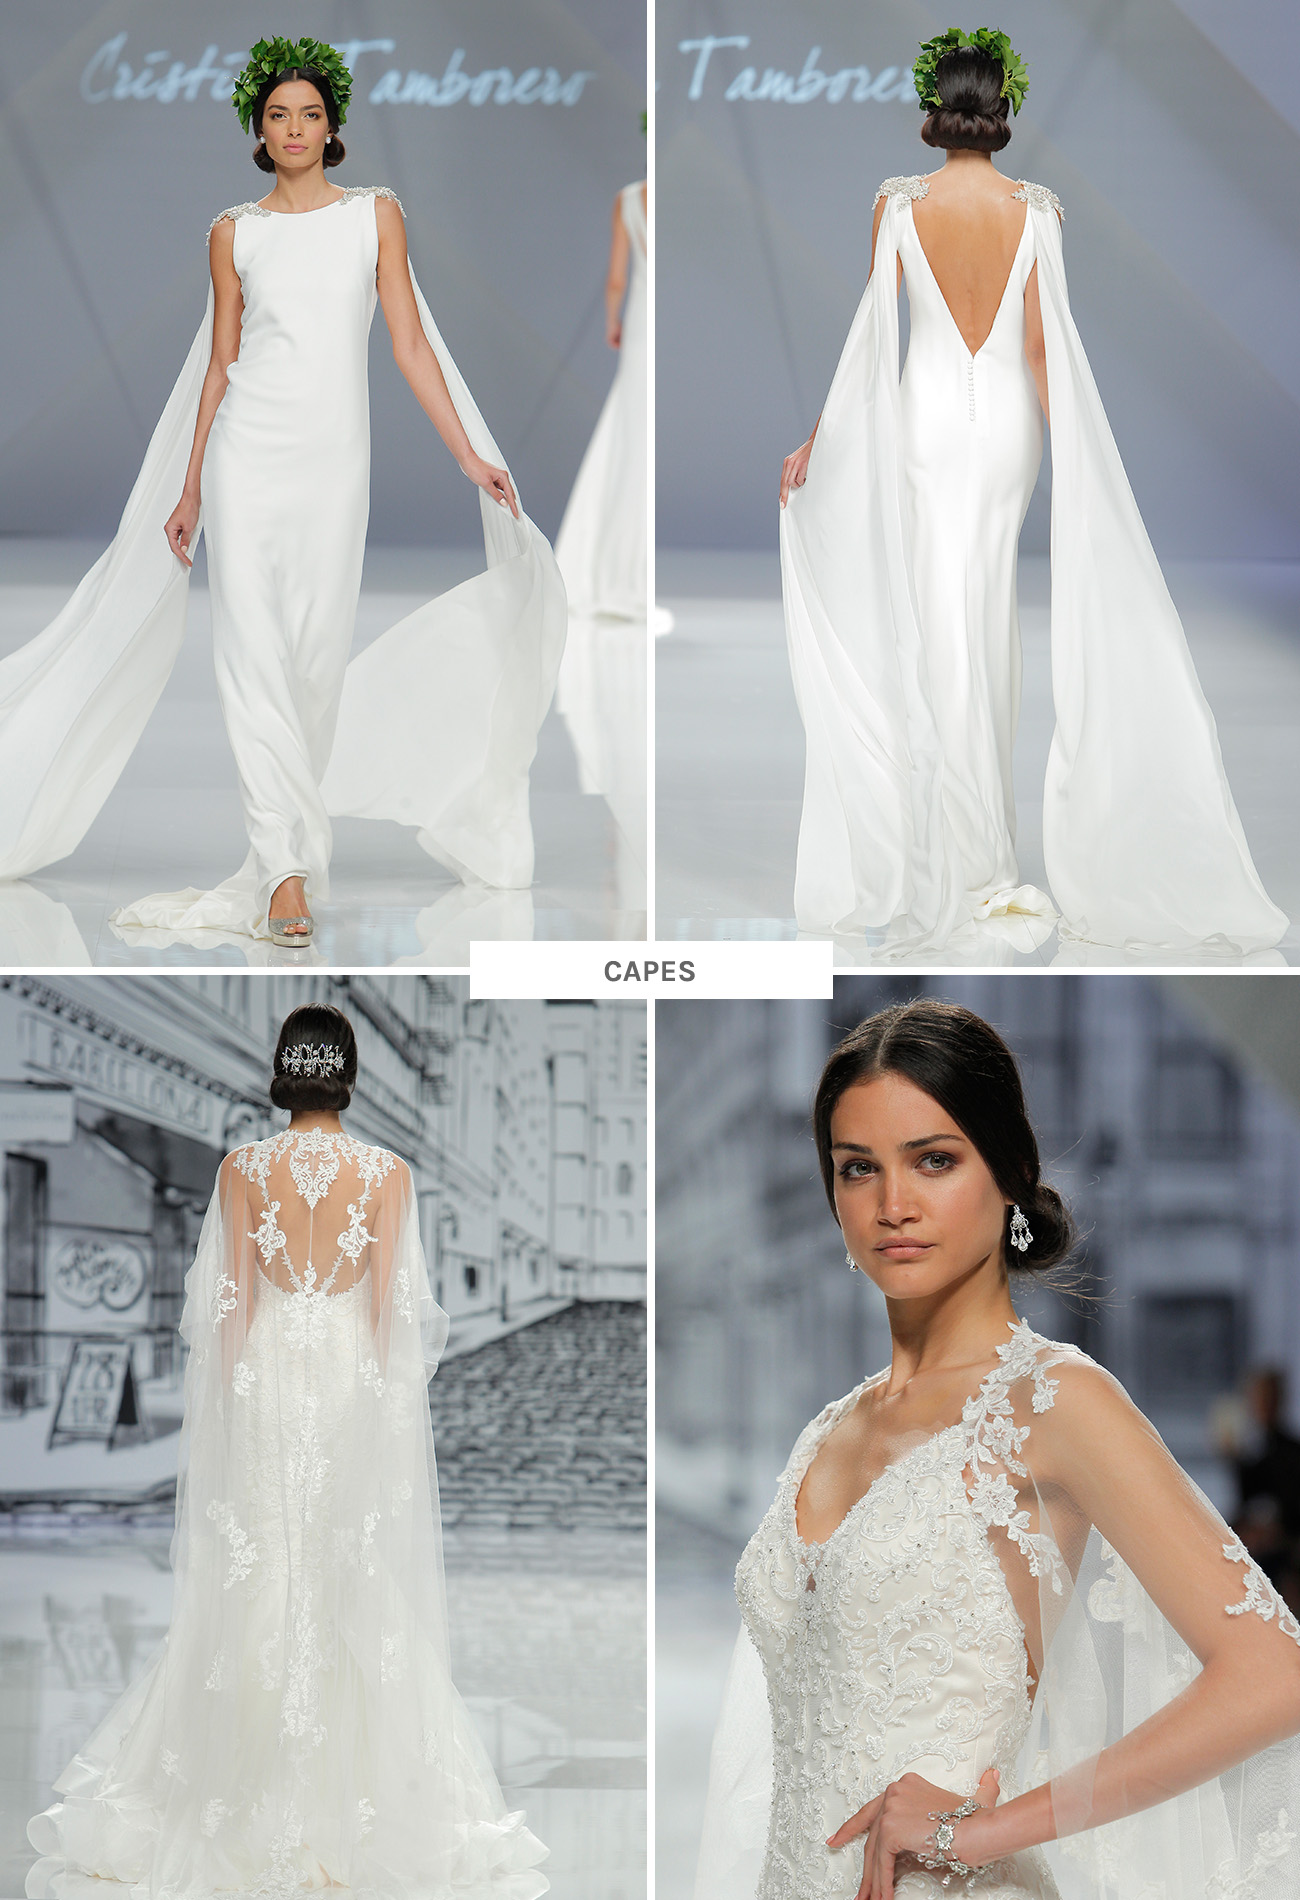 wedding dress trends from barcelona bridal fashion week wedding dress with cape Wedding Dresses with capes from Barcelona Bridal Week